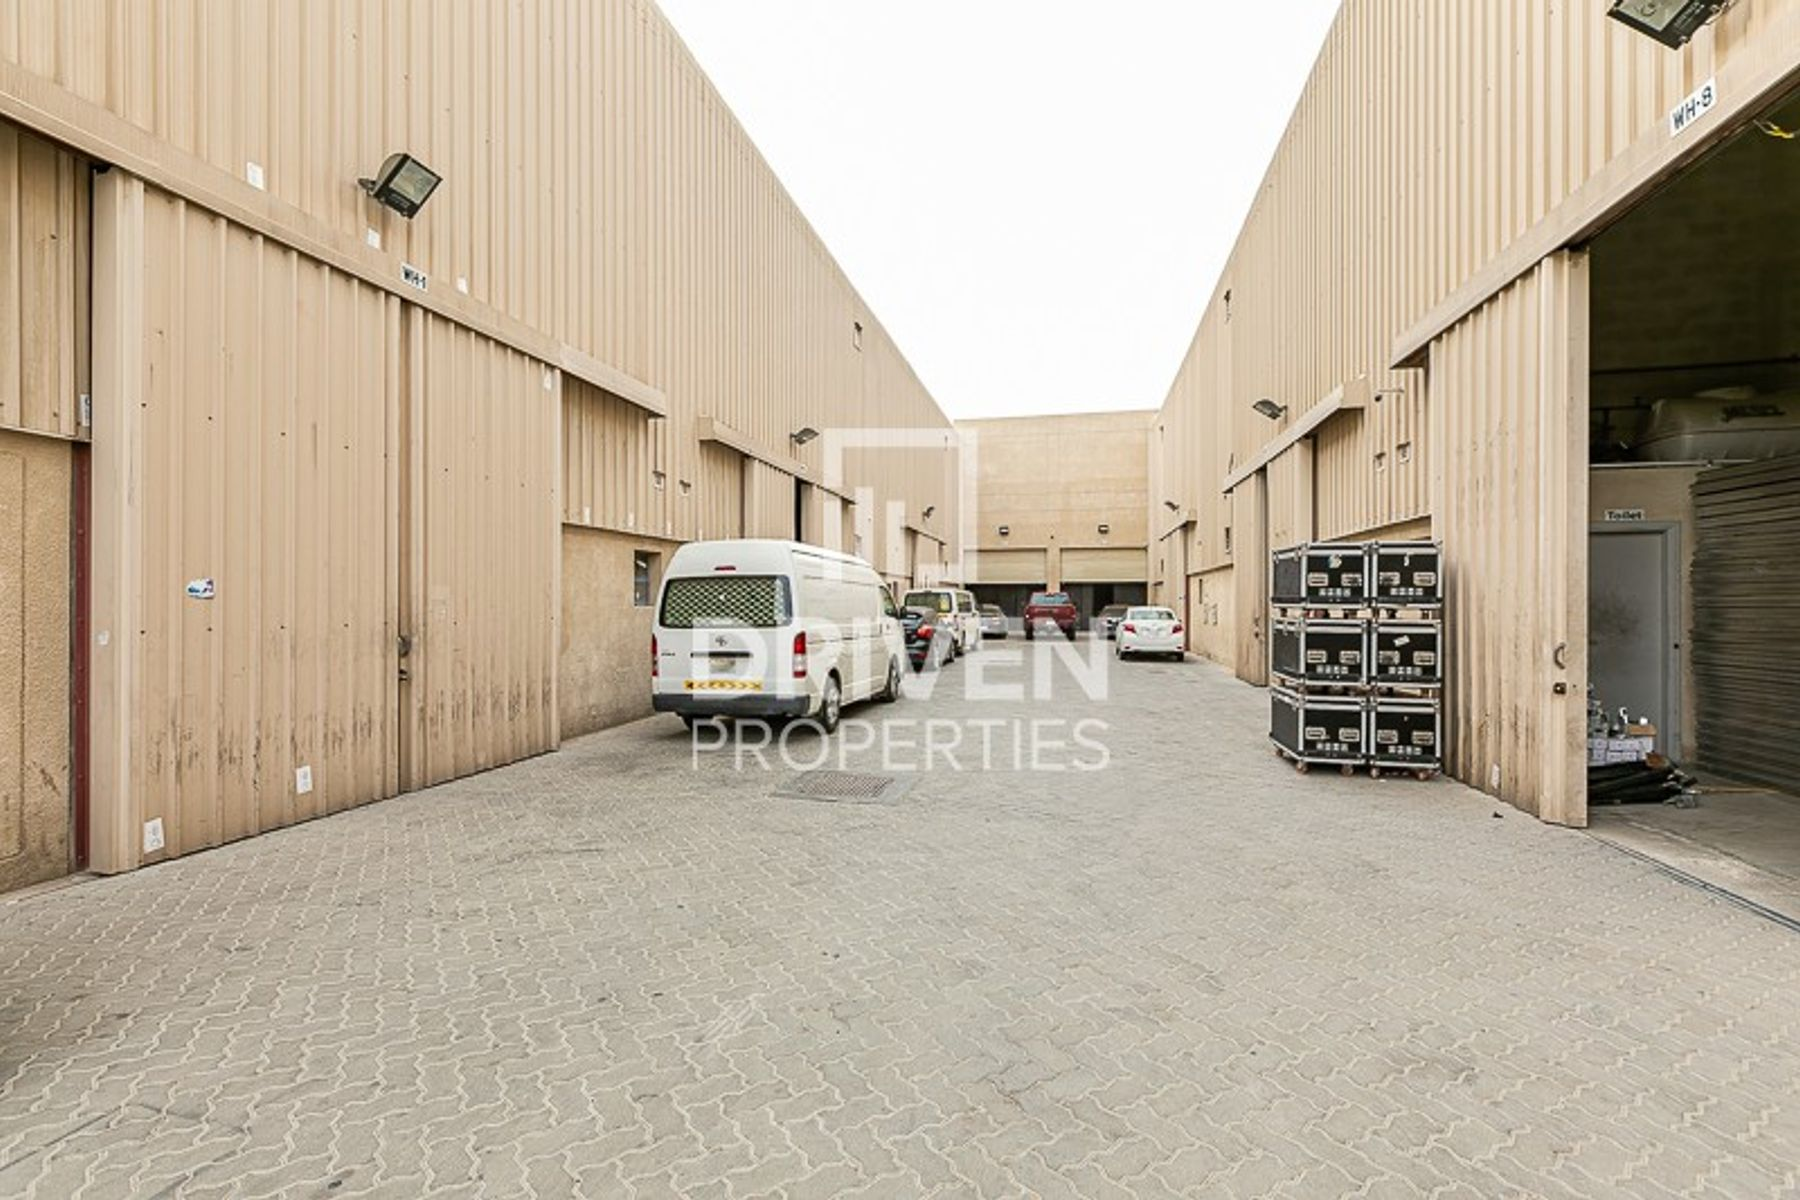 Warehouse light industrial with 60 KW